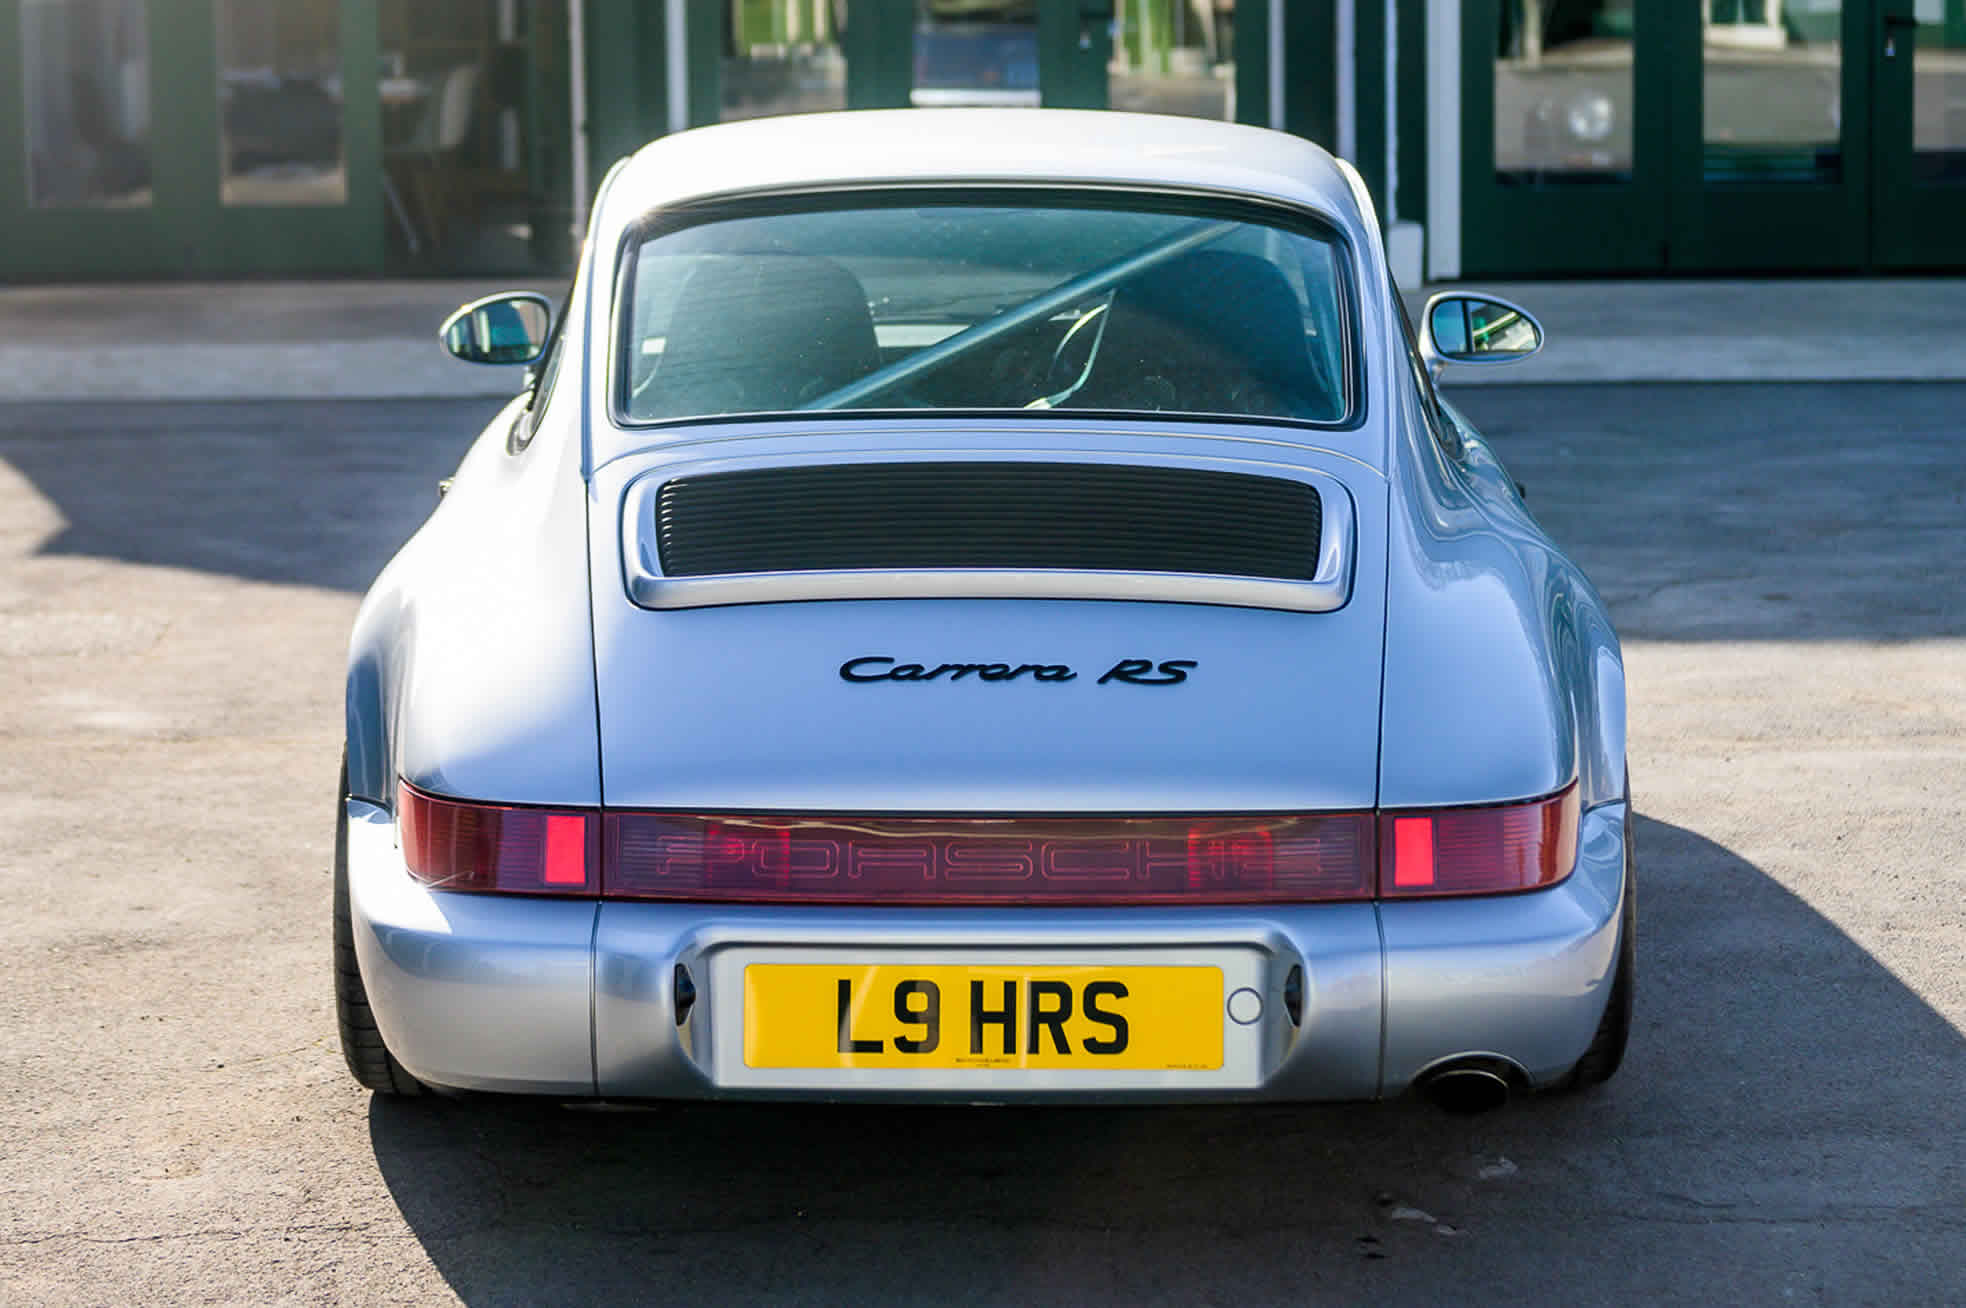 1992 Porsche 964 RS (RHD), for Sale at Sports Purpose, Bicester Heritage, Oxon - rear